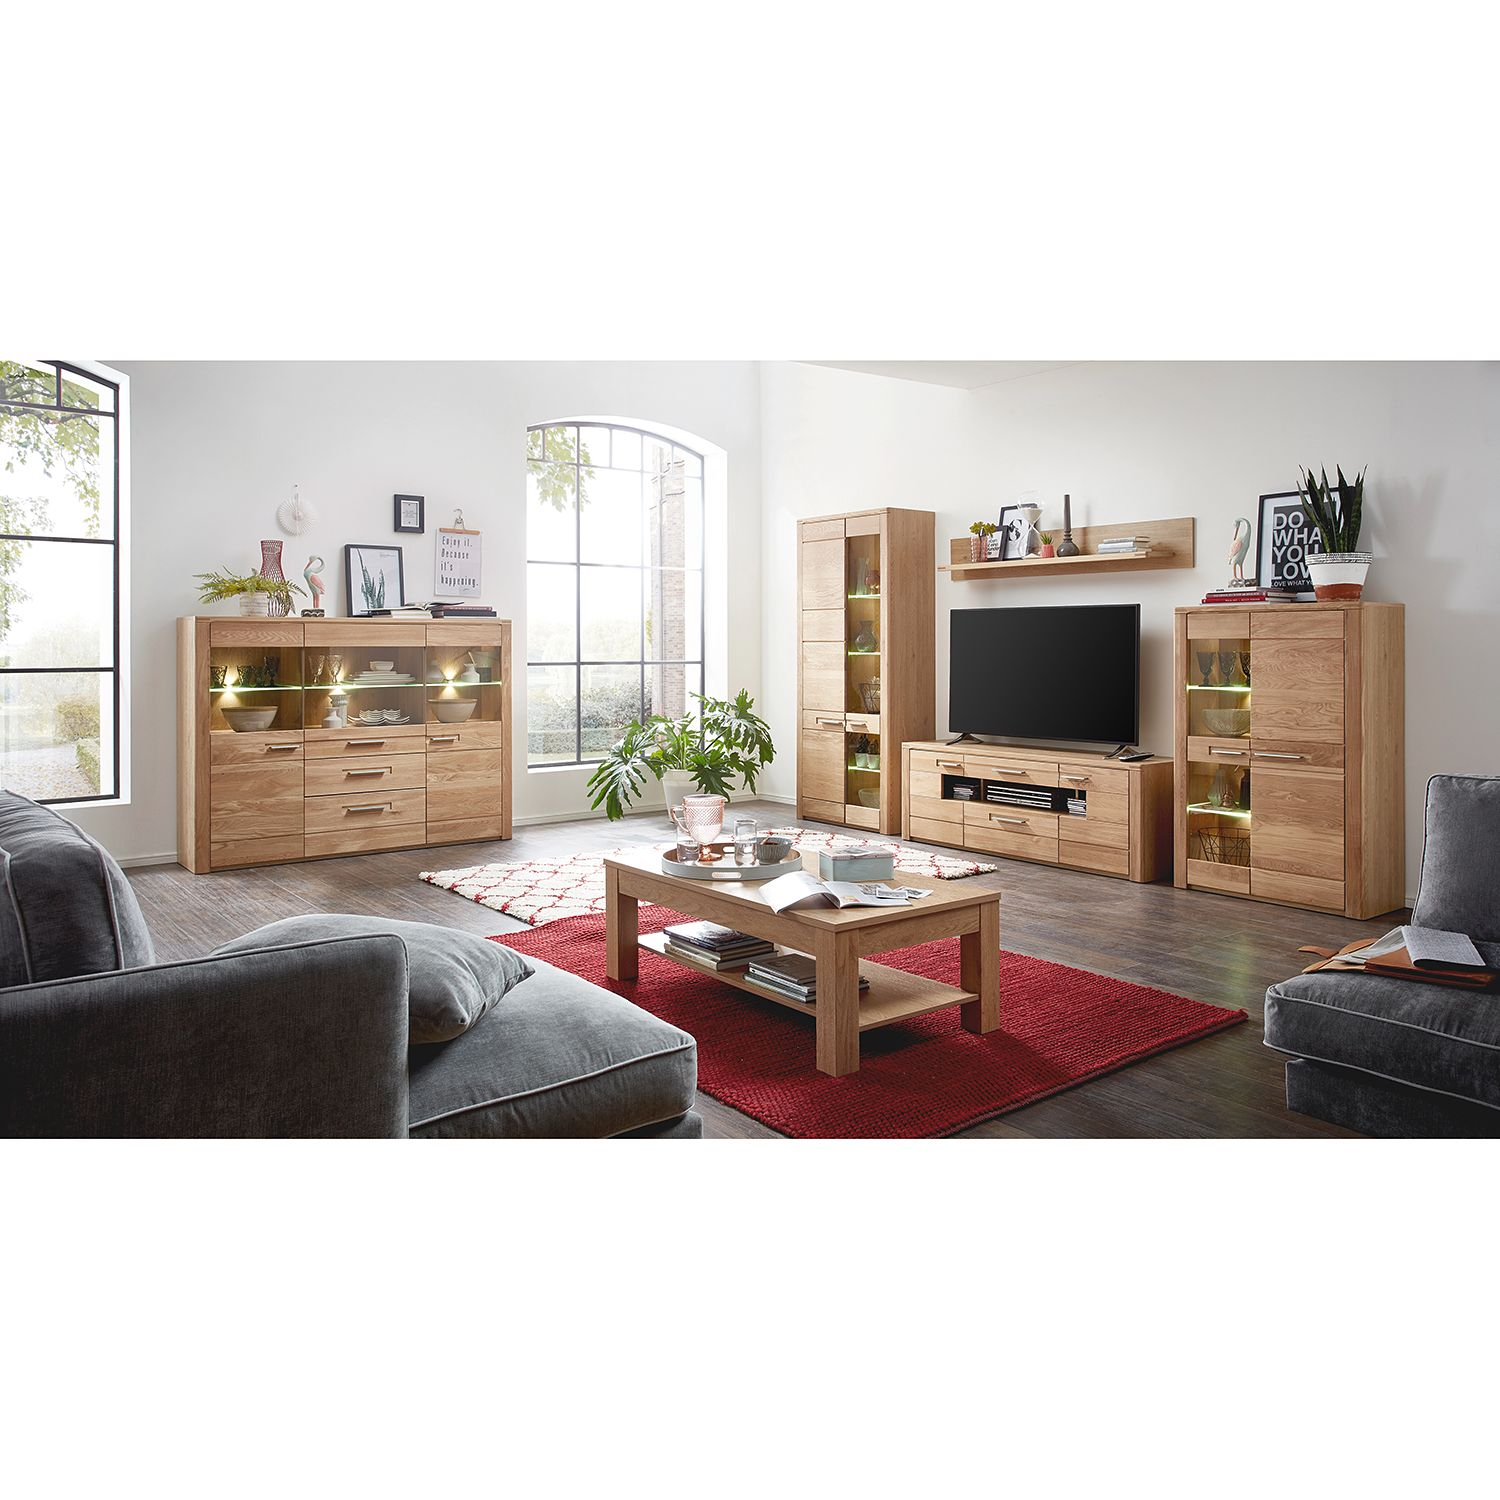 Ensemble meubles TV NatureStar